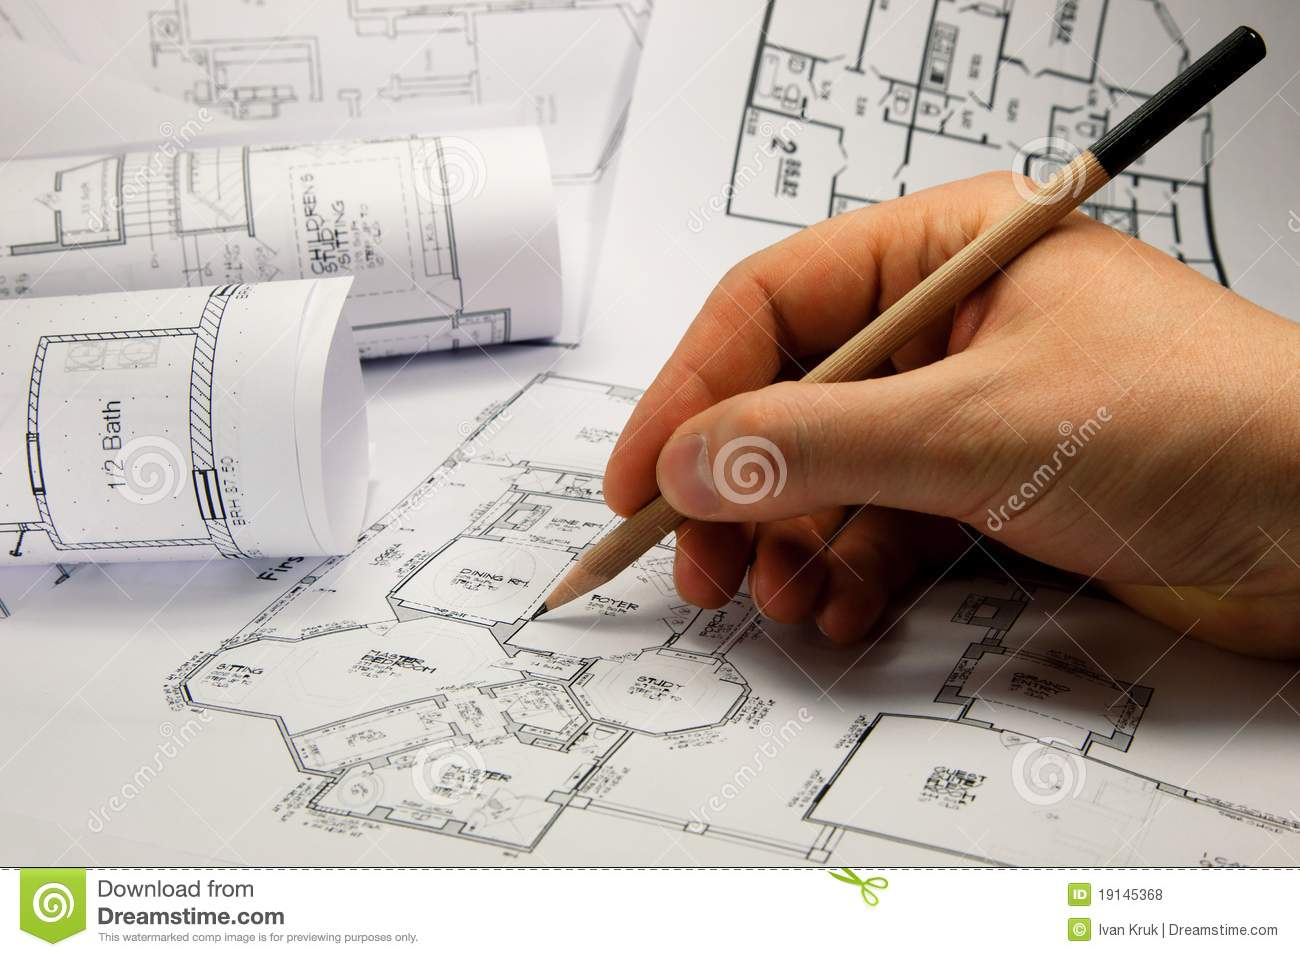 Architecture Drawing Hand architecture drawing stock photos, images, & pictures - 38,247 images